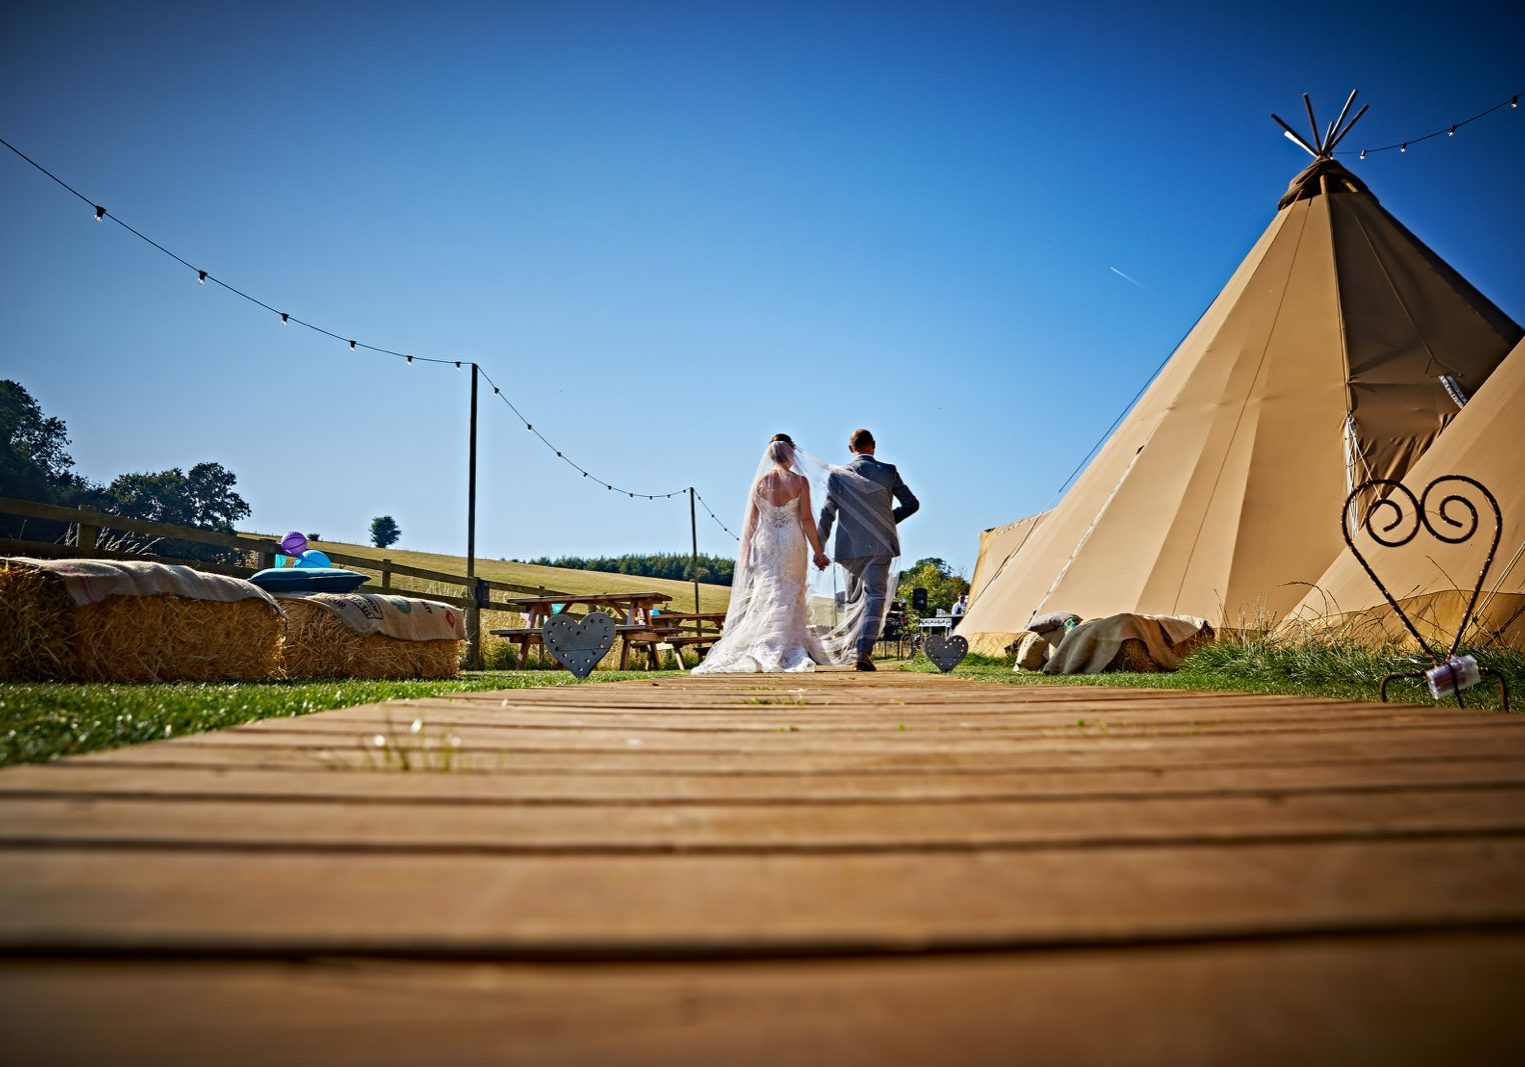 Bridal couple walking by a teepee